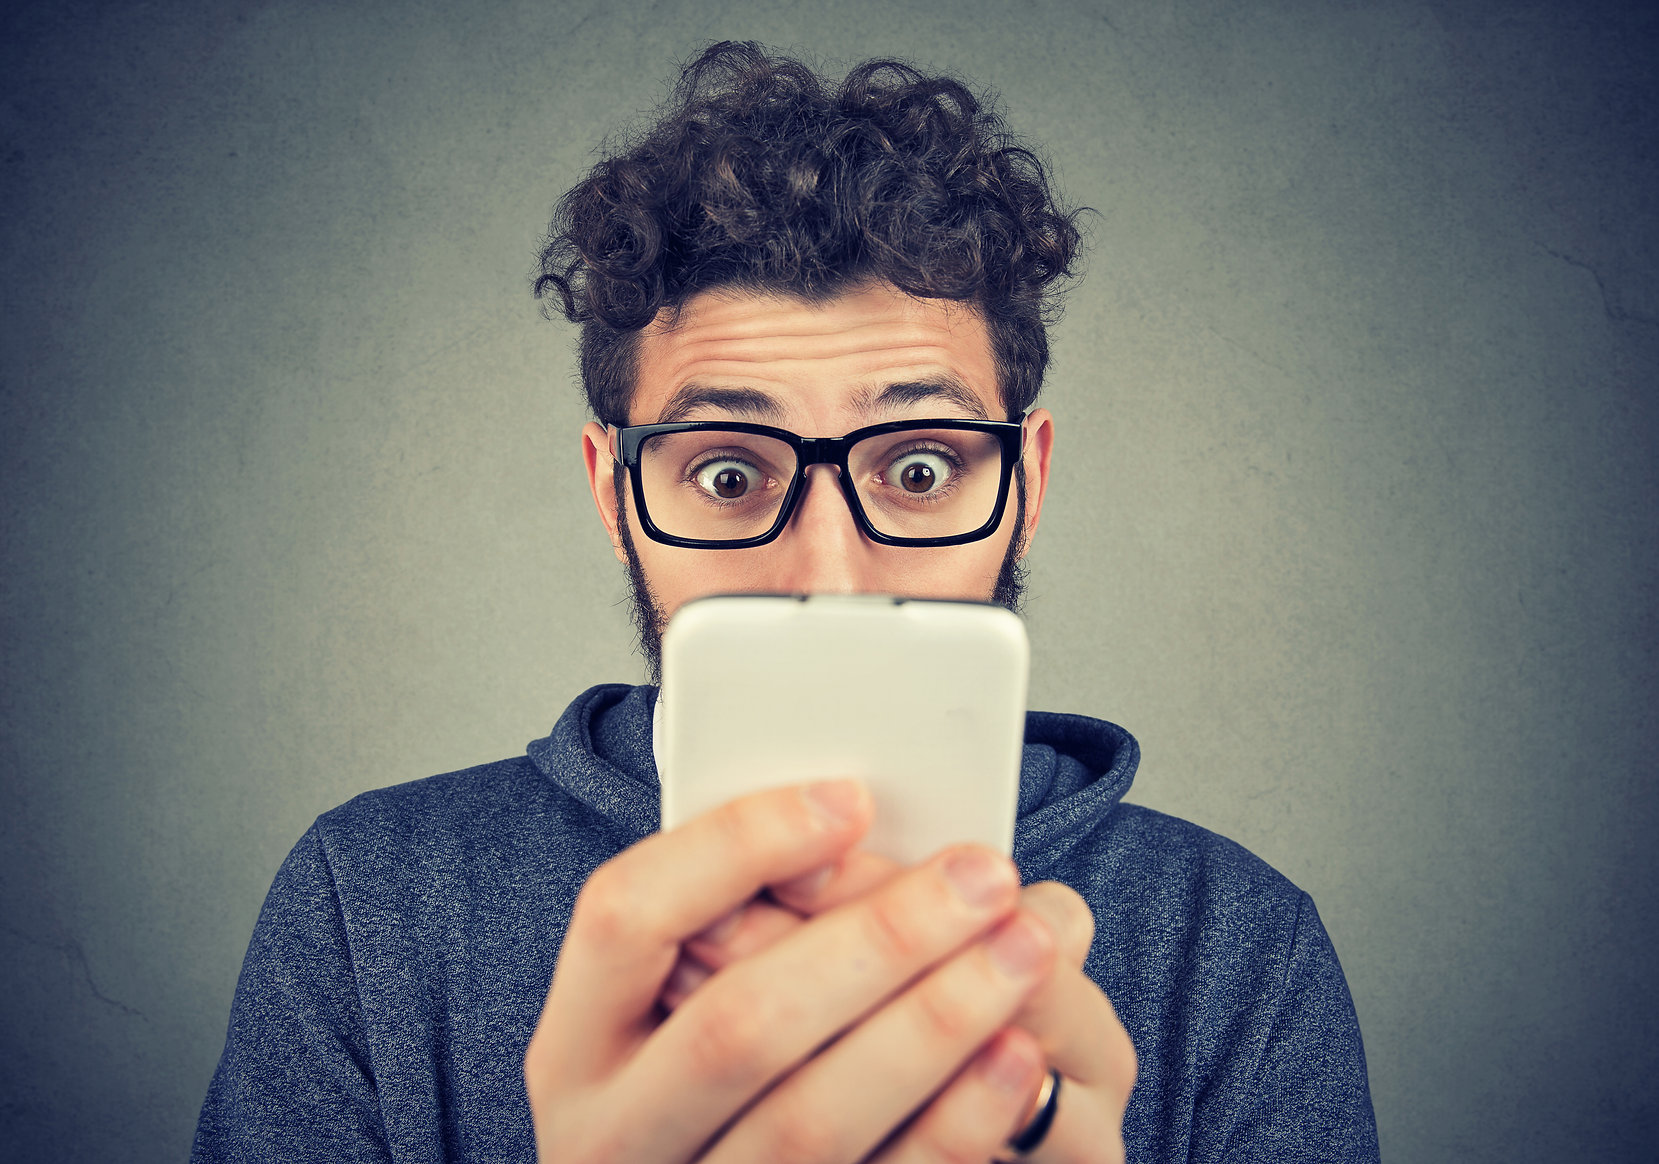 Canva - Shocked man watching smartphone.